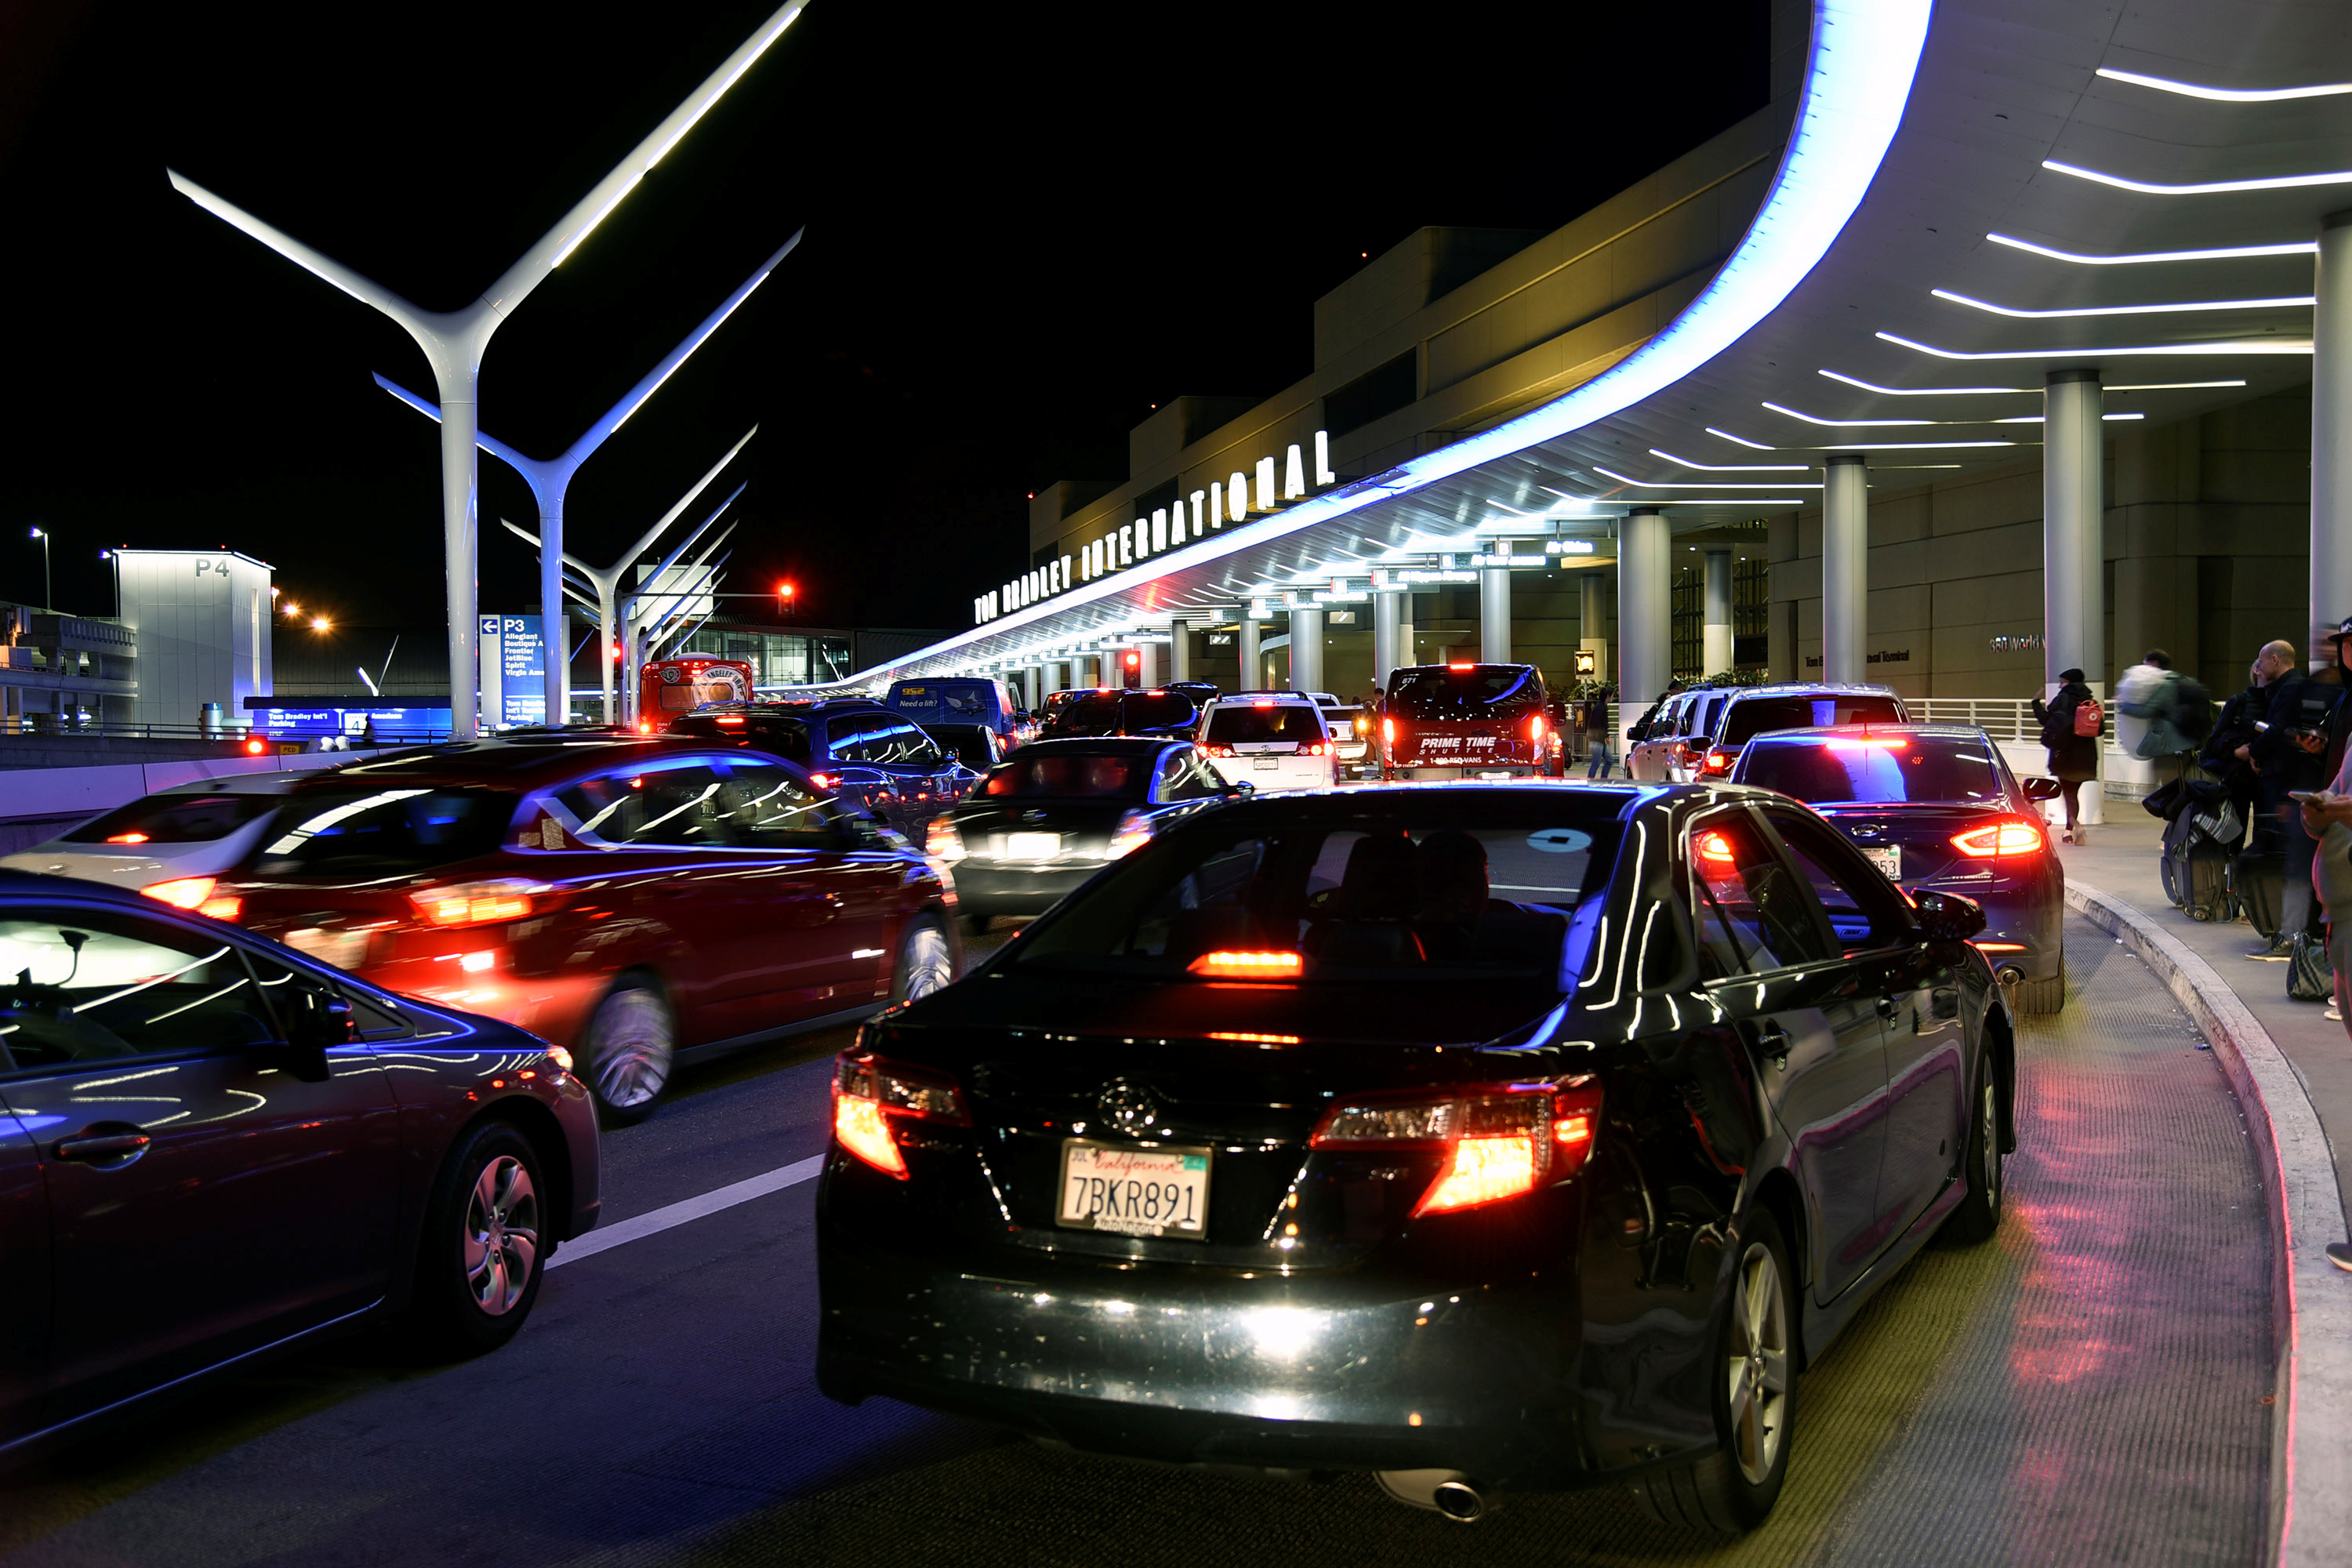 Backed-up traffic is seen outside the Tom Bradley International Terminal during the Thanksgiving holiday season, at Los Angeles International Airport in Los Angeles, California, U.S. November 23, 2016. REUTERS/Bob Riha Jr.  - RTST1XE